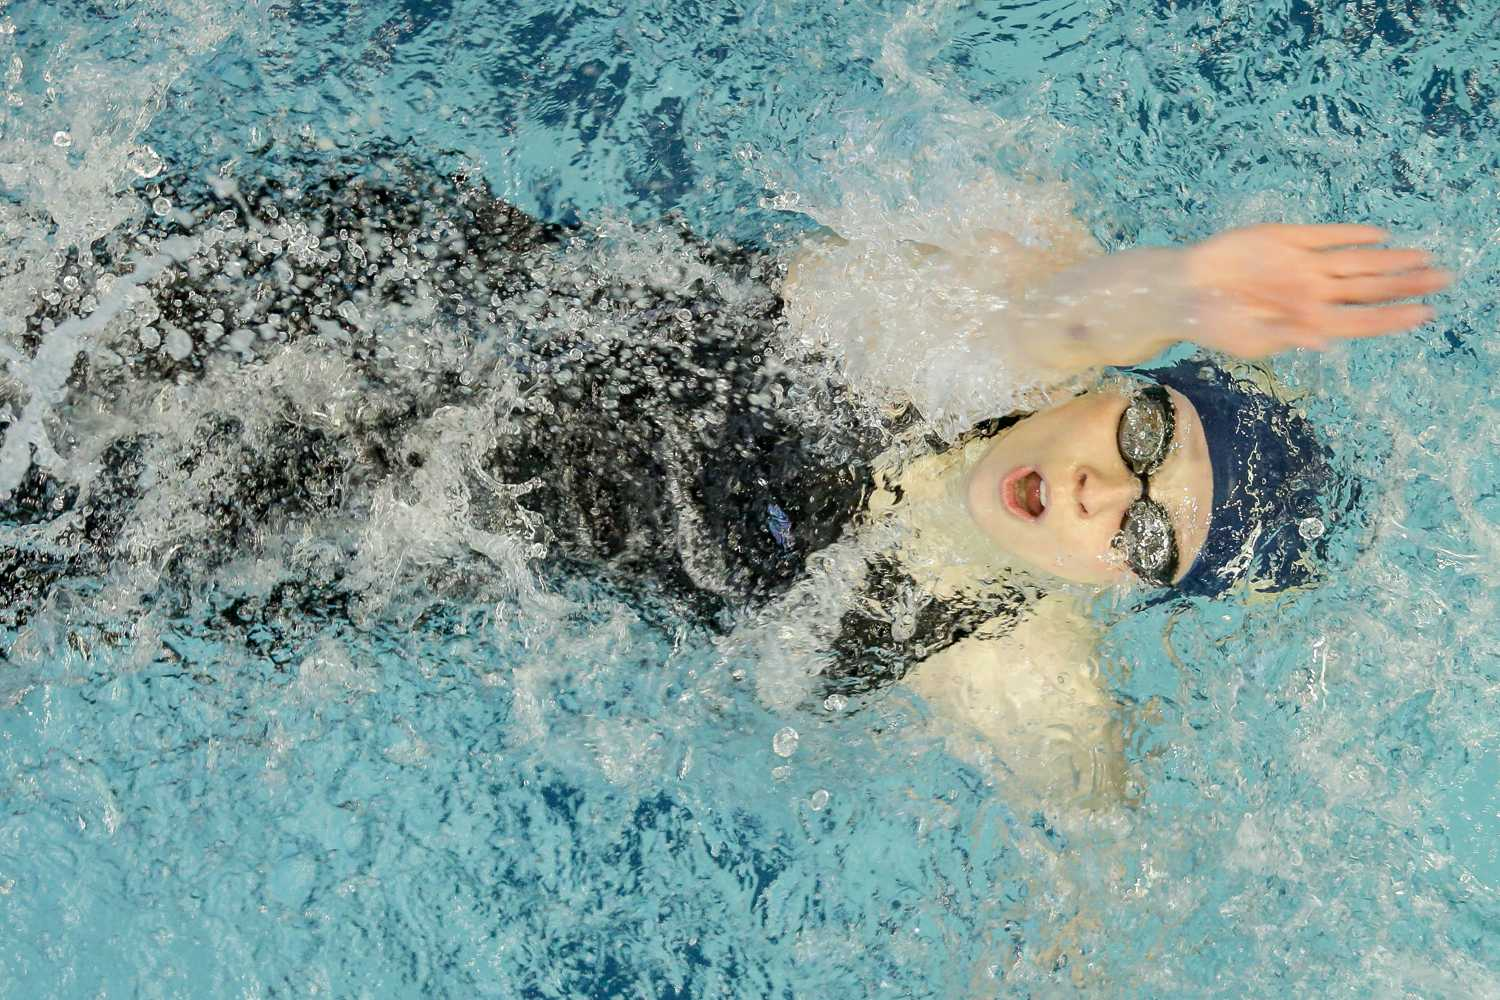 Sophomore swimmer Shan Hochkeppel placed second in the 100-meter backstroke. (Photo by Thomas Yang | Visual Editor)